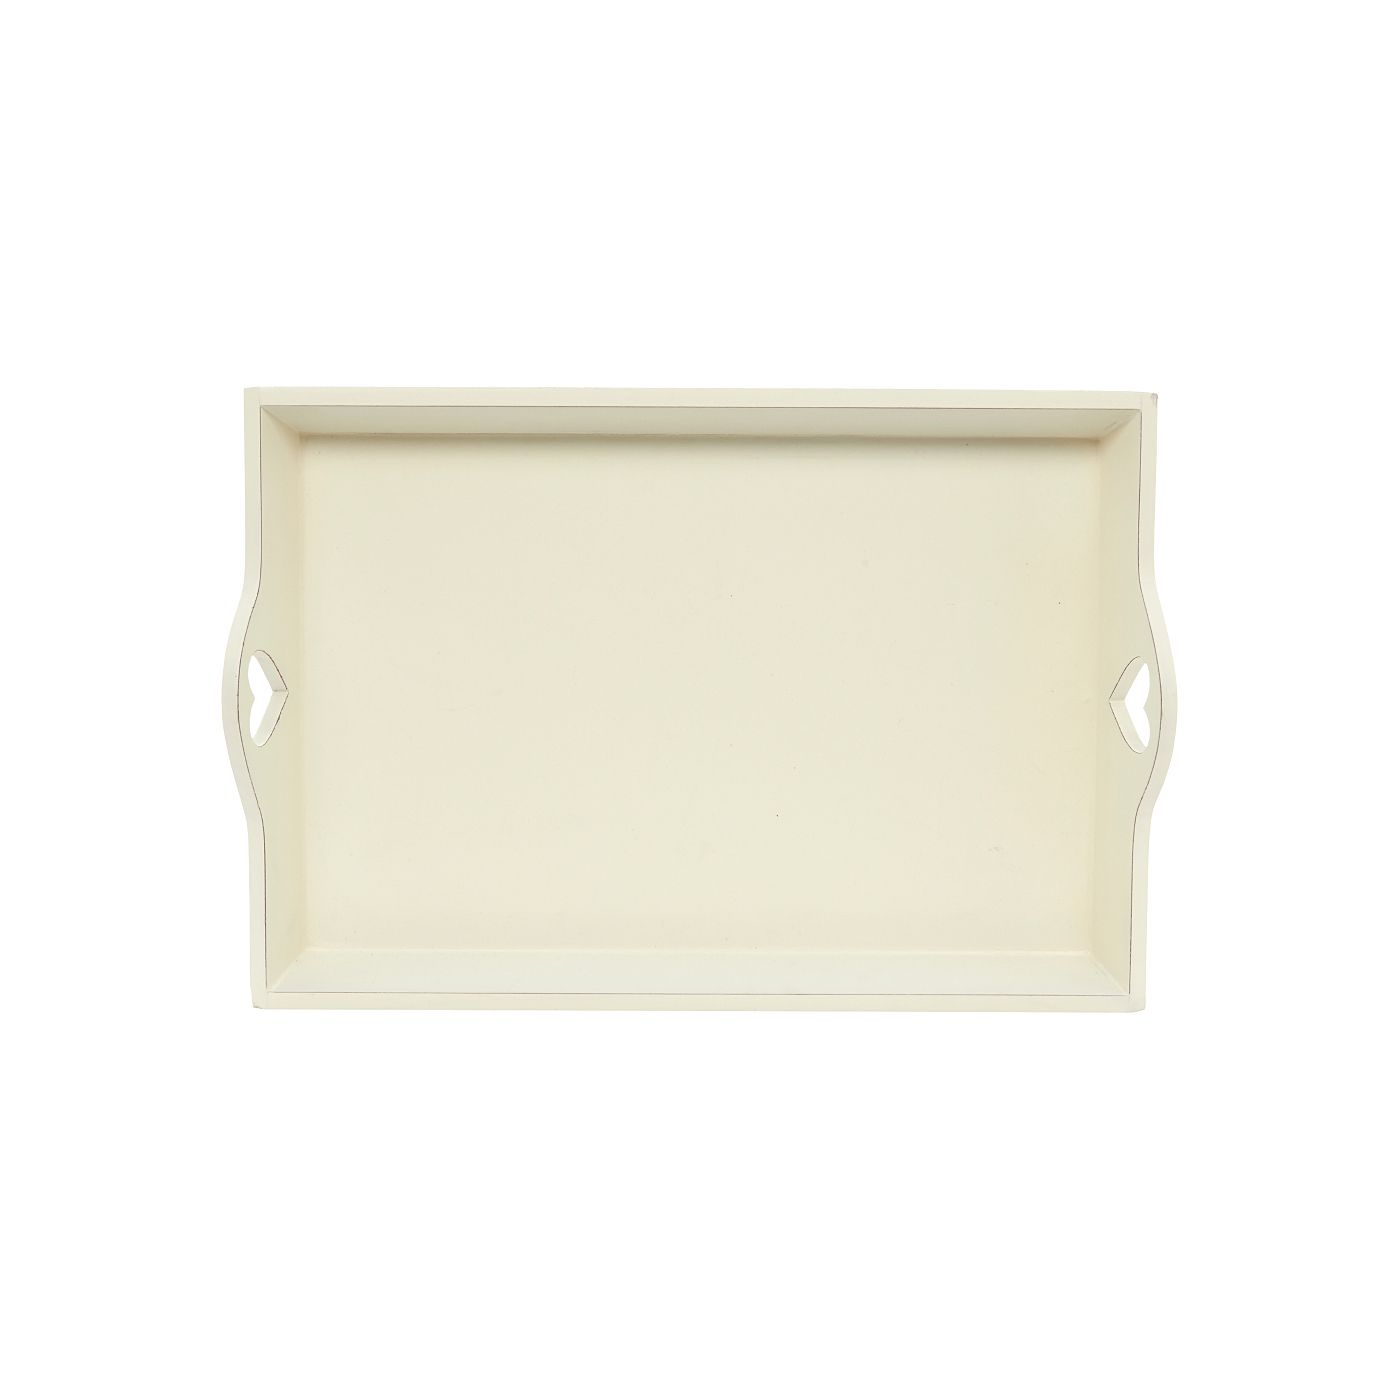 George Home Wooden Tray With Heart Handles | Serving Trays | ASDA ...